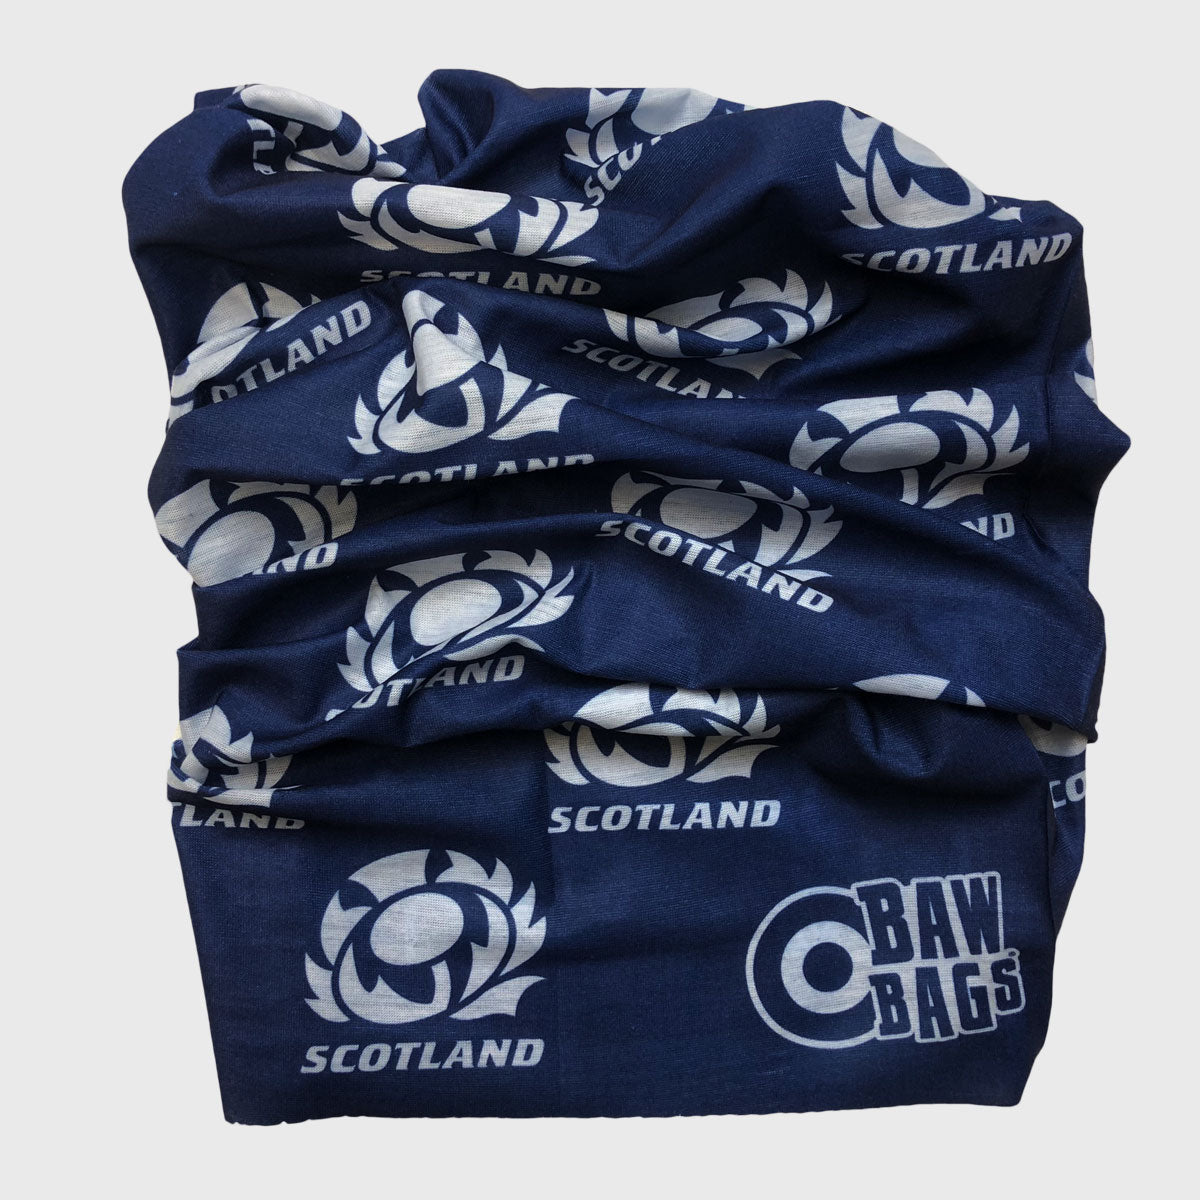 Scotland Rugby Wizard Sleeve Buff Navy/White